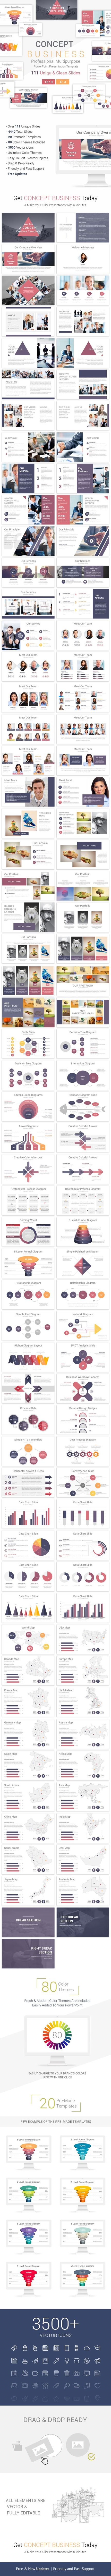 concept business powerpoint presentation template | powerpoint, Modern powerpoint